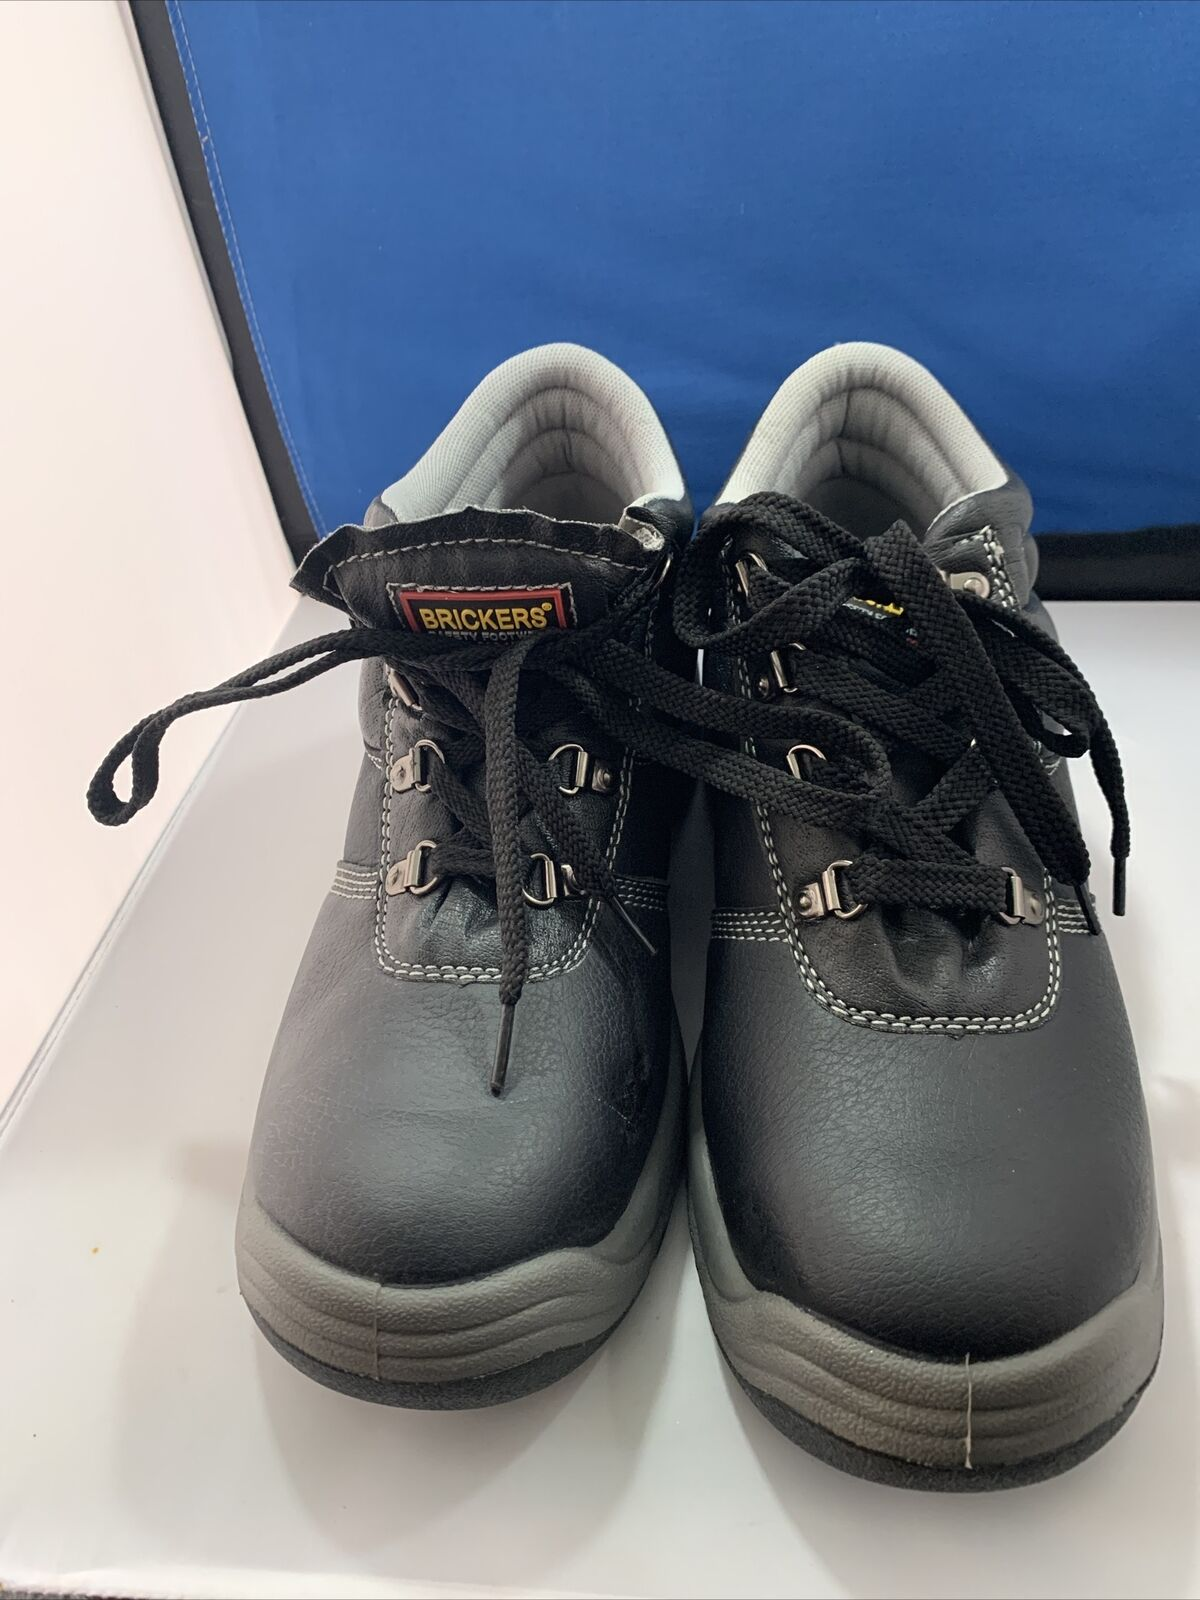 BRICKERS WORKERS BOOTS BLACK GREY SAFETY STEEL TOE CAP SIZE 8#09